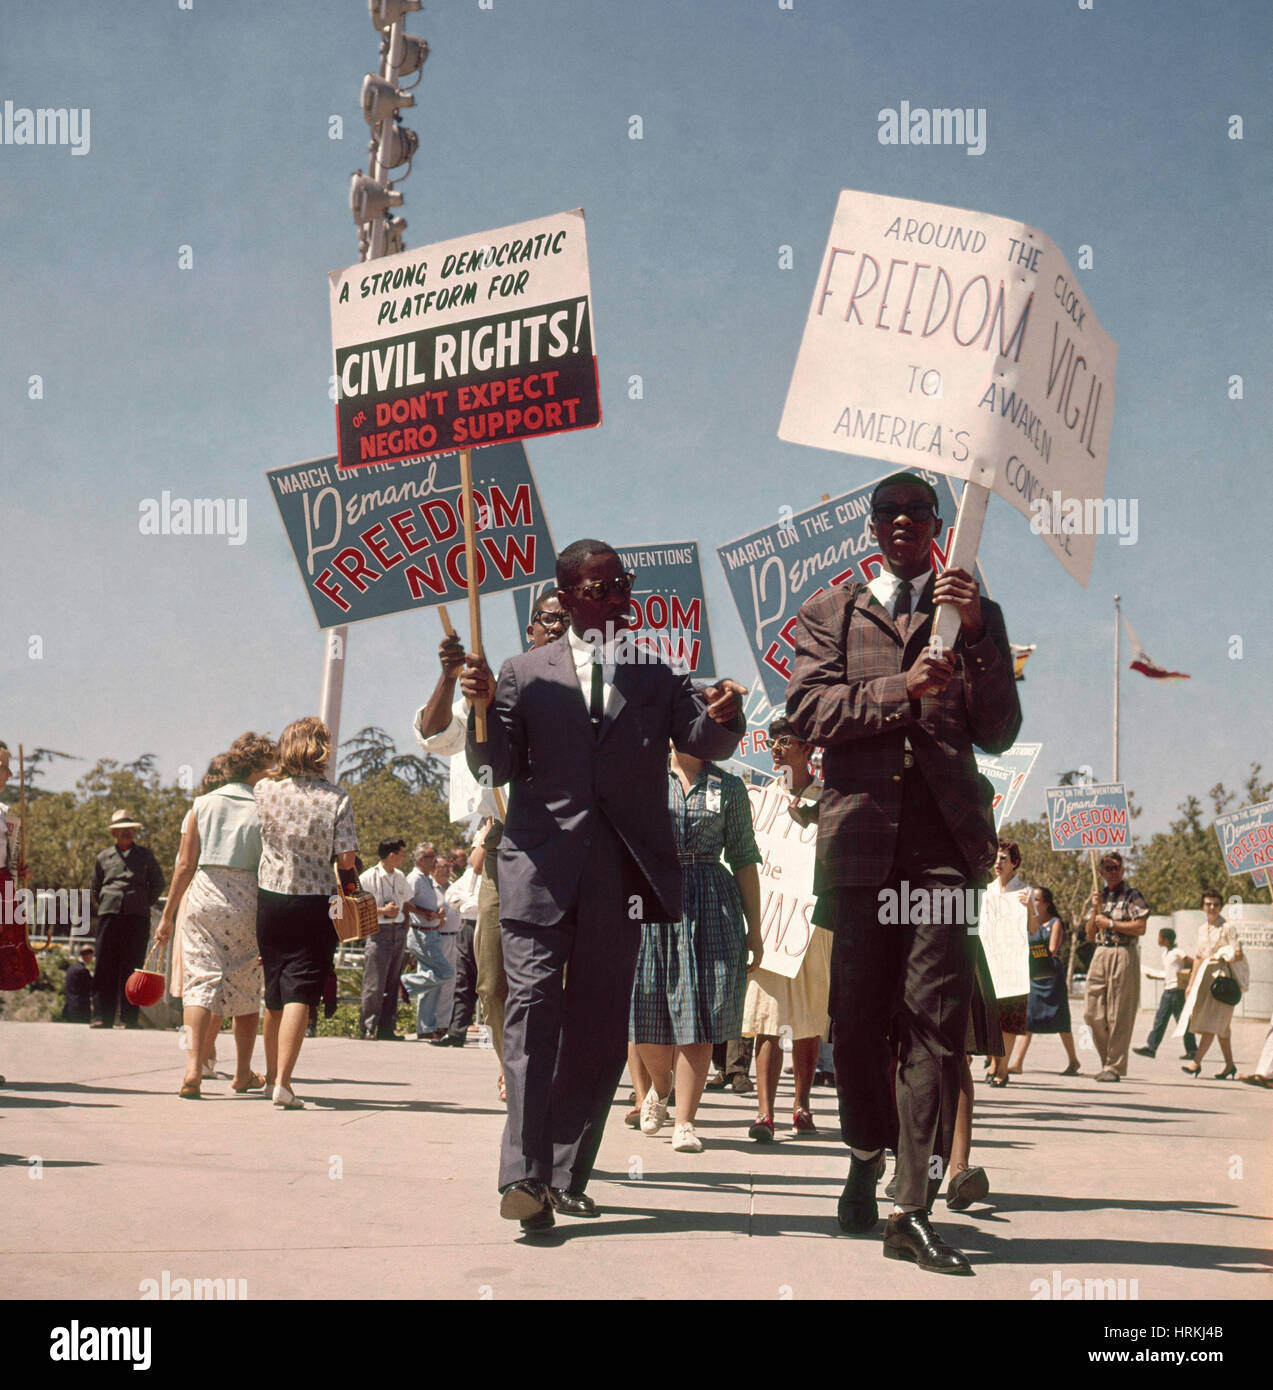 Civil Rights March - Stock Image